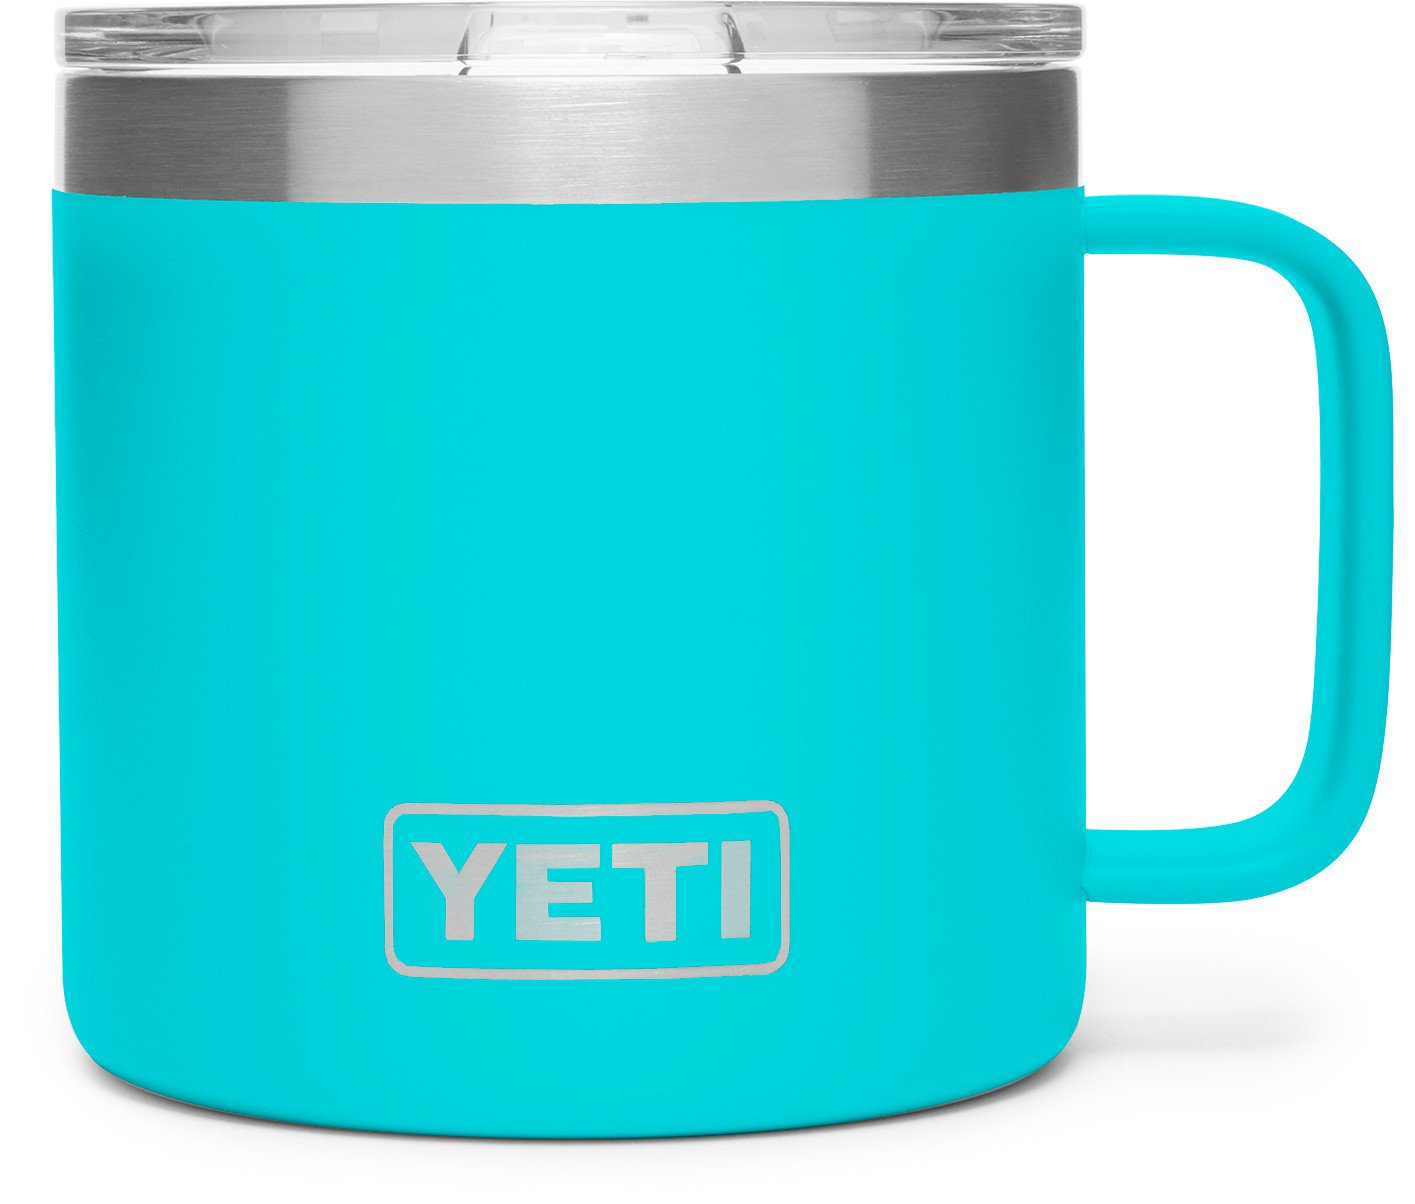 f0c8c556efd Display product reviews for YETI DuraCoat Rambler 14 oz Mug This ...